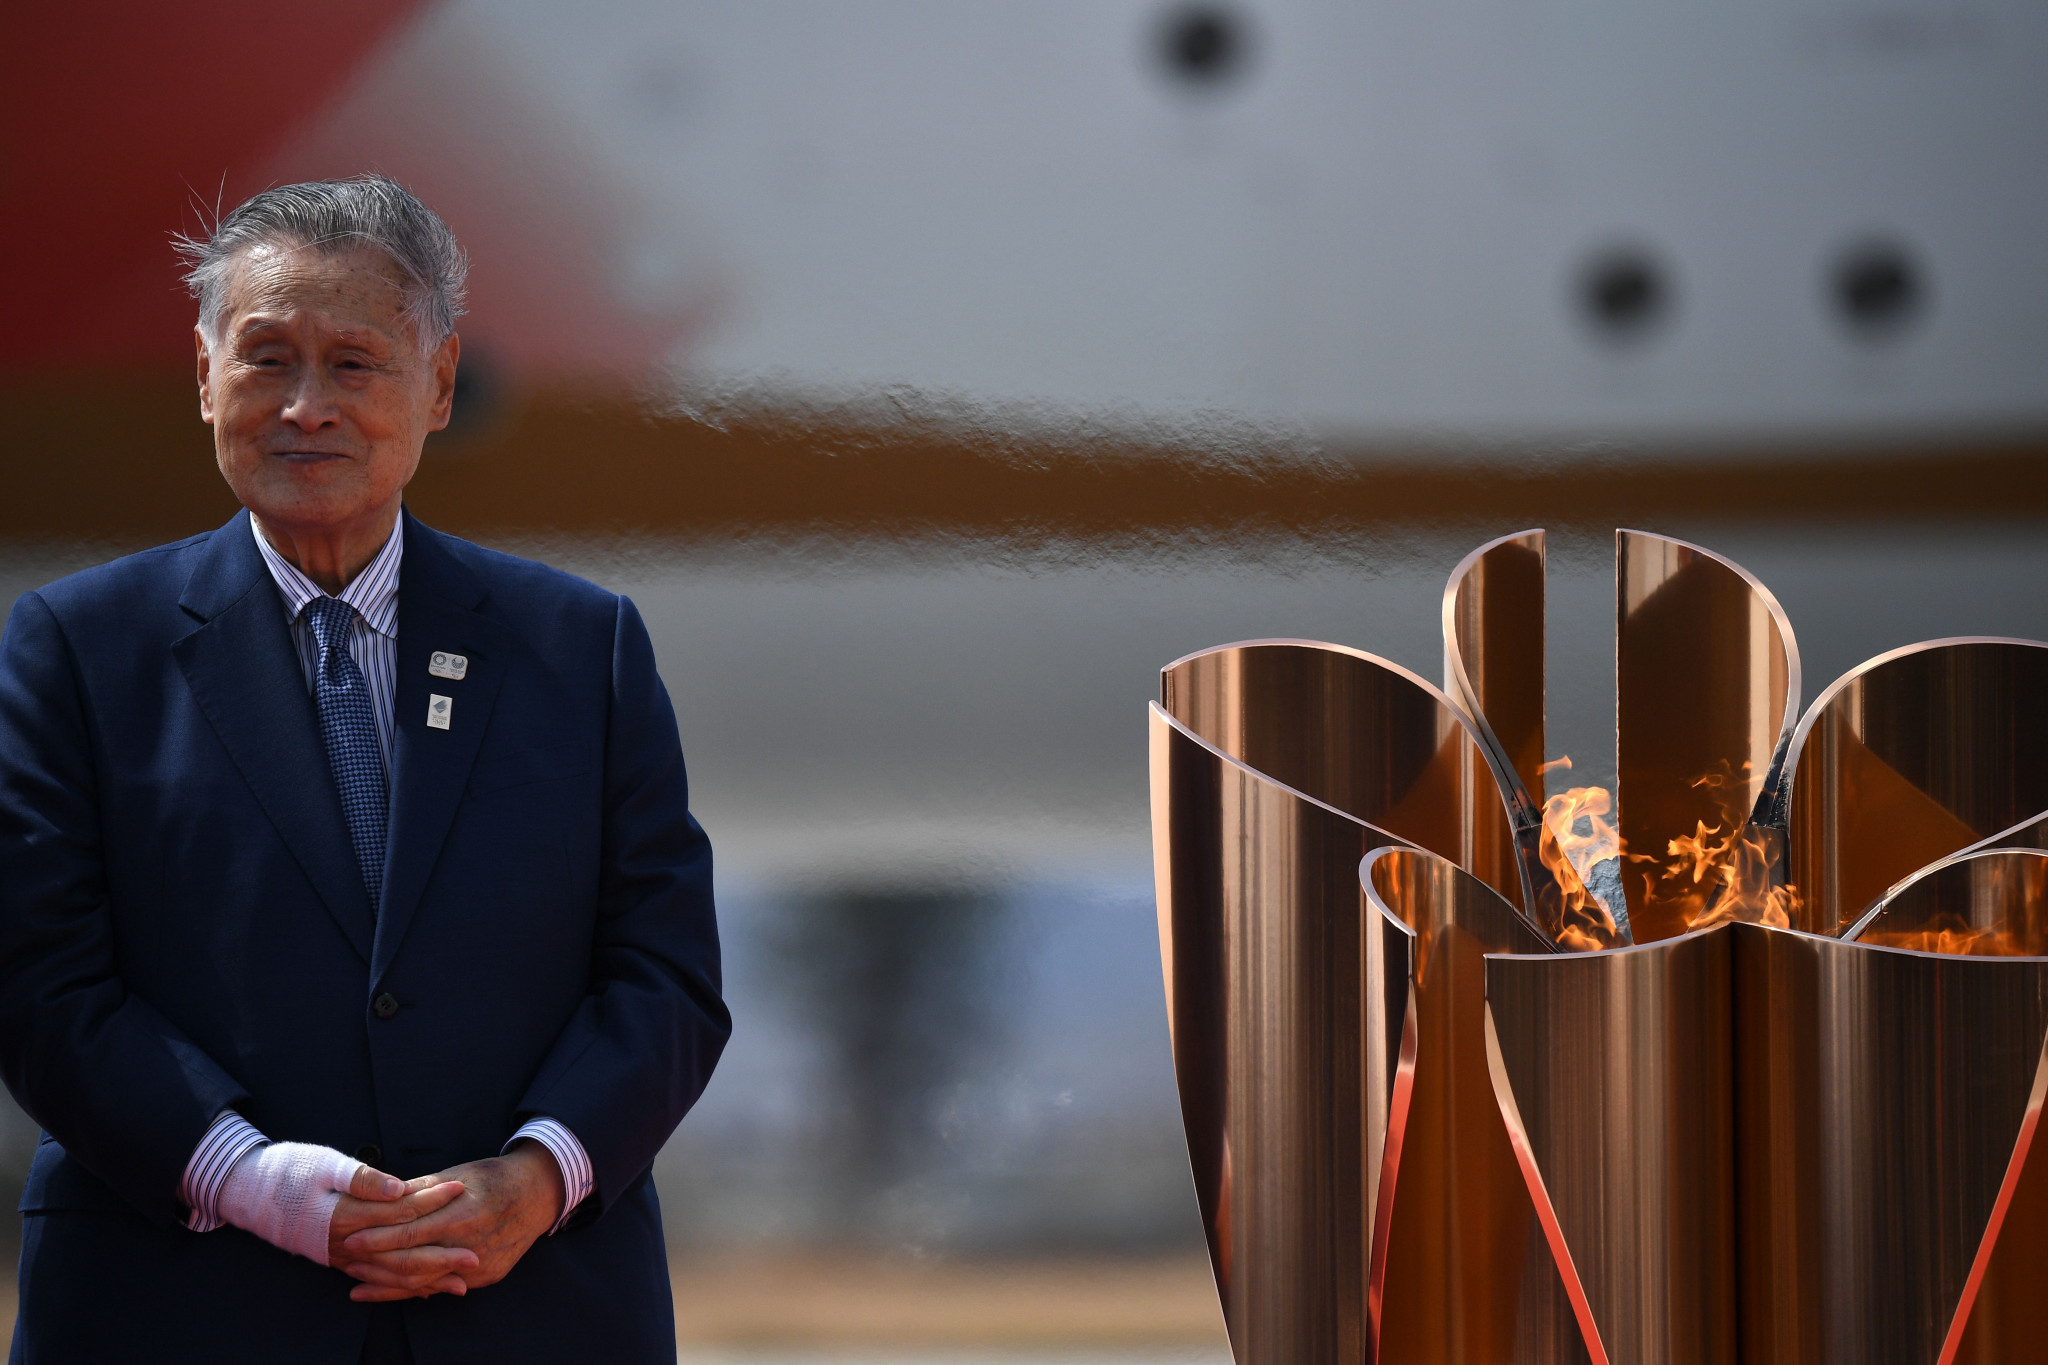 Tokyo 2020 President Yoshirō Mori has said that the postponed Olympics and Paralympics will go ahead next summer